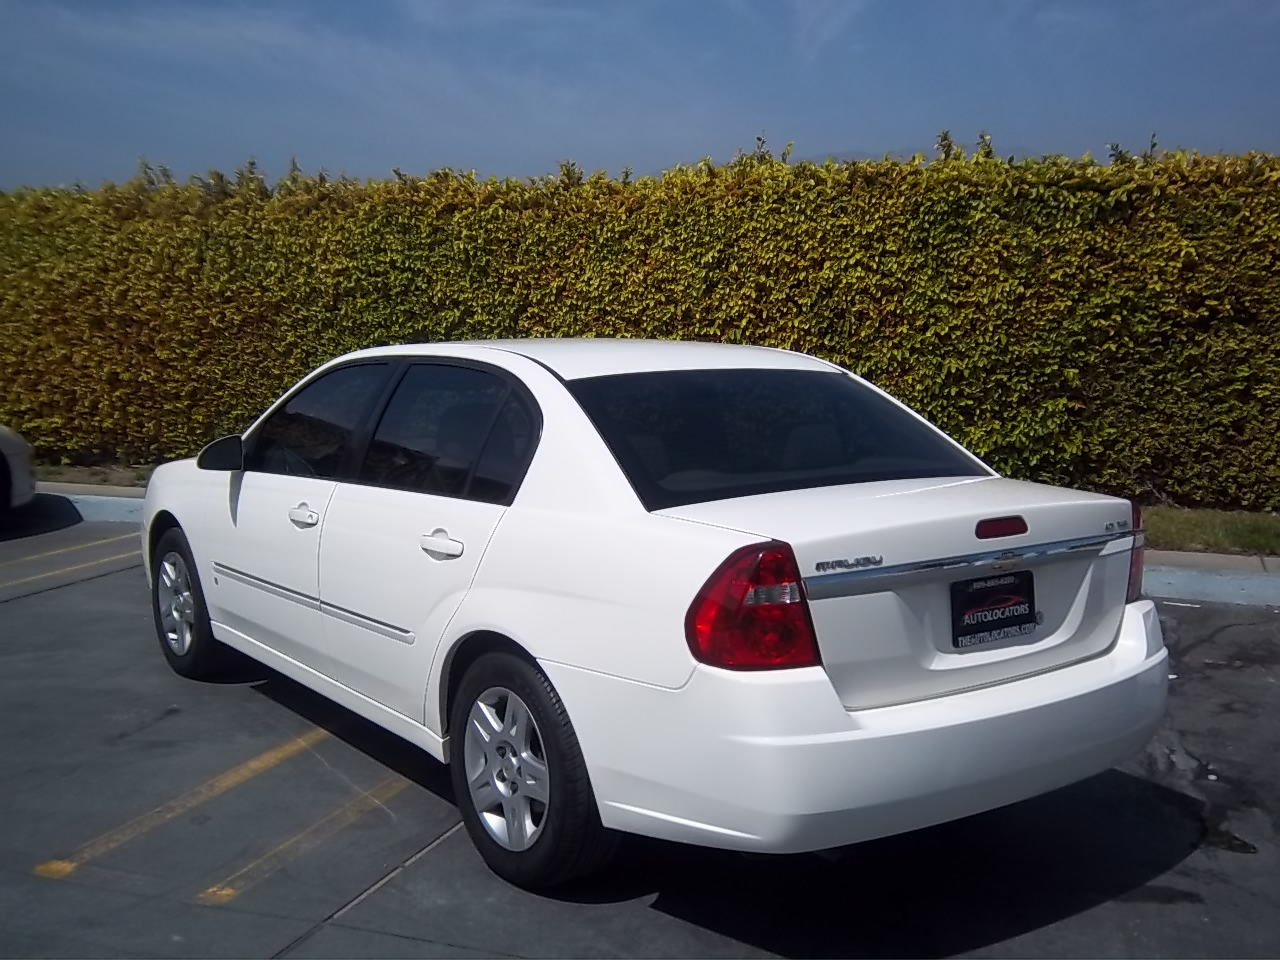 2010 chevy malibu repair manual pdf